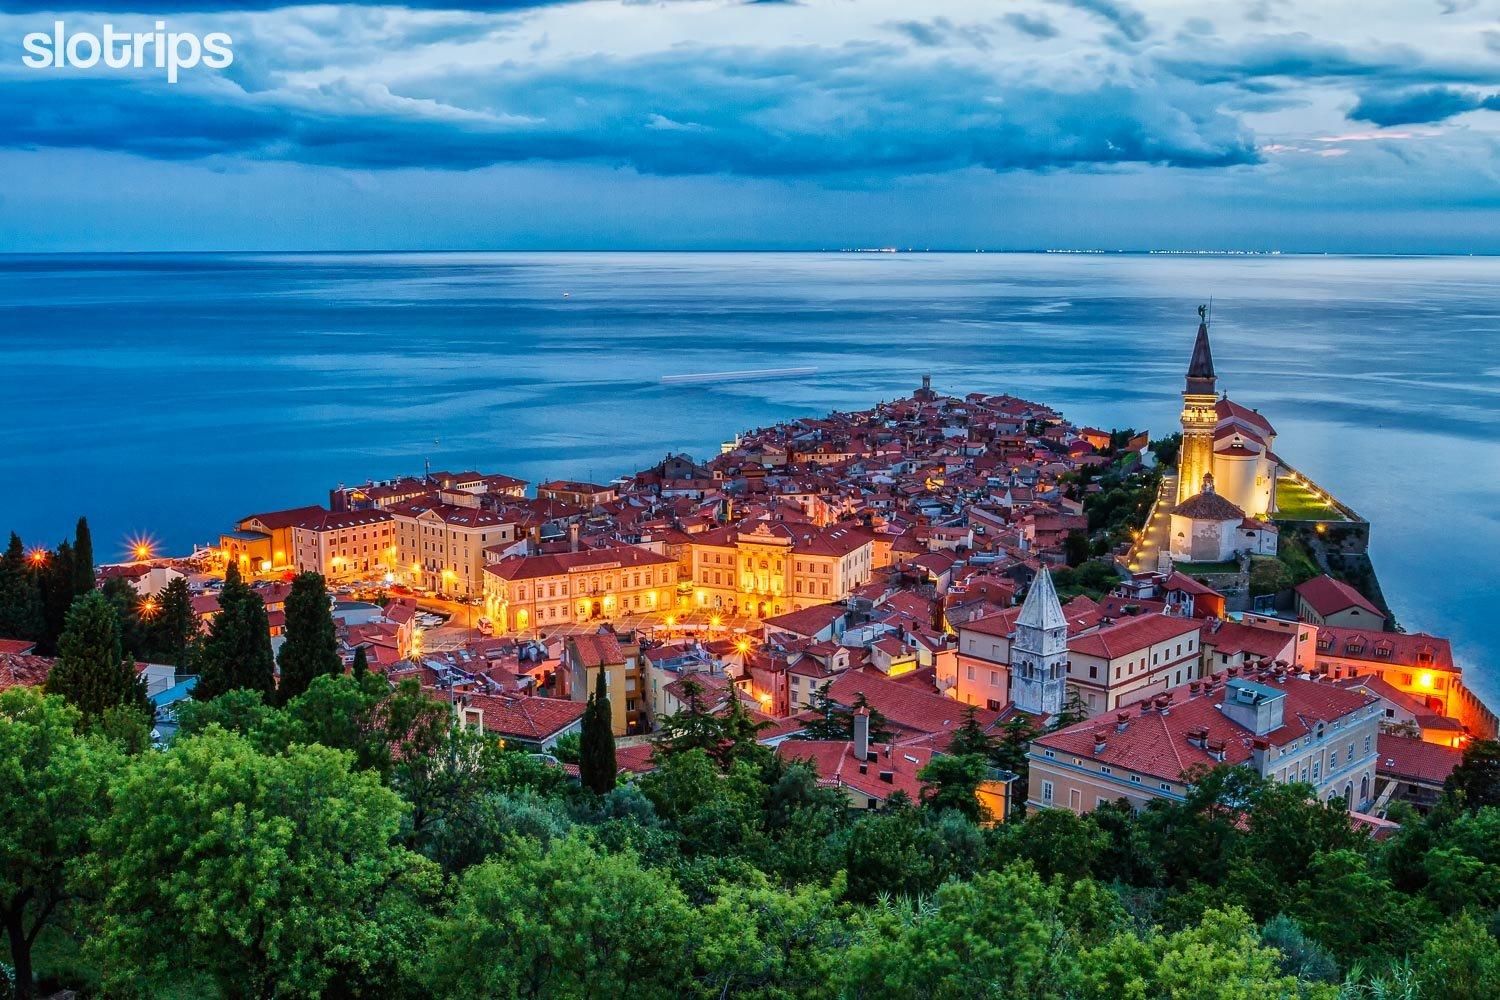 Piran on the Adriatic Coast